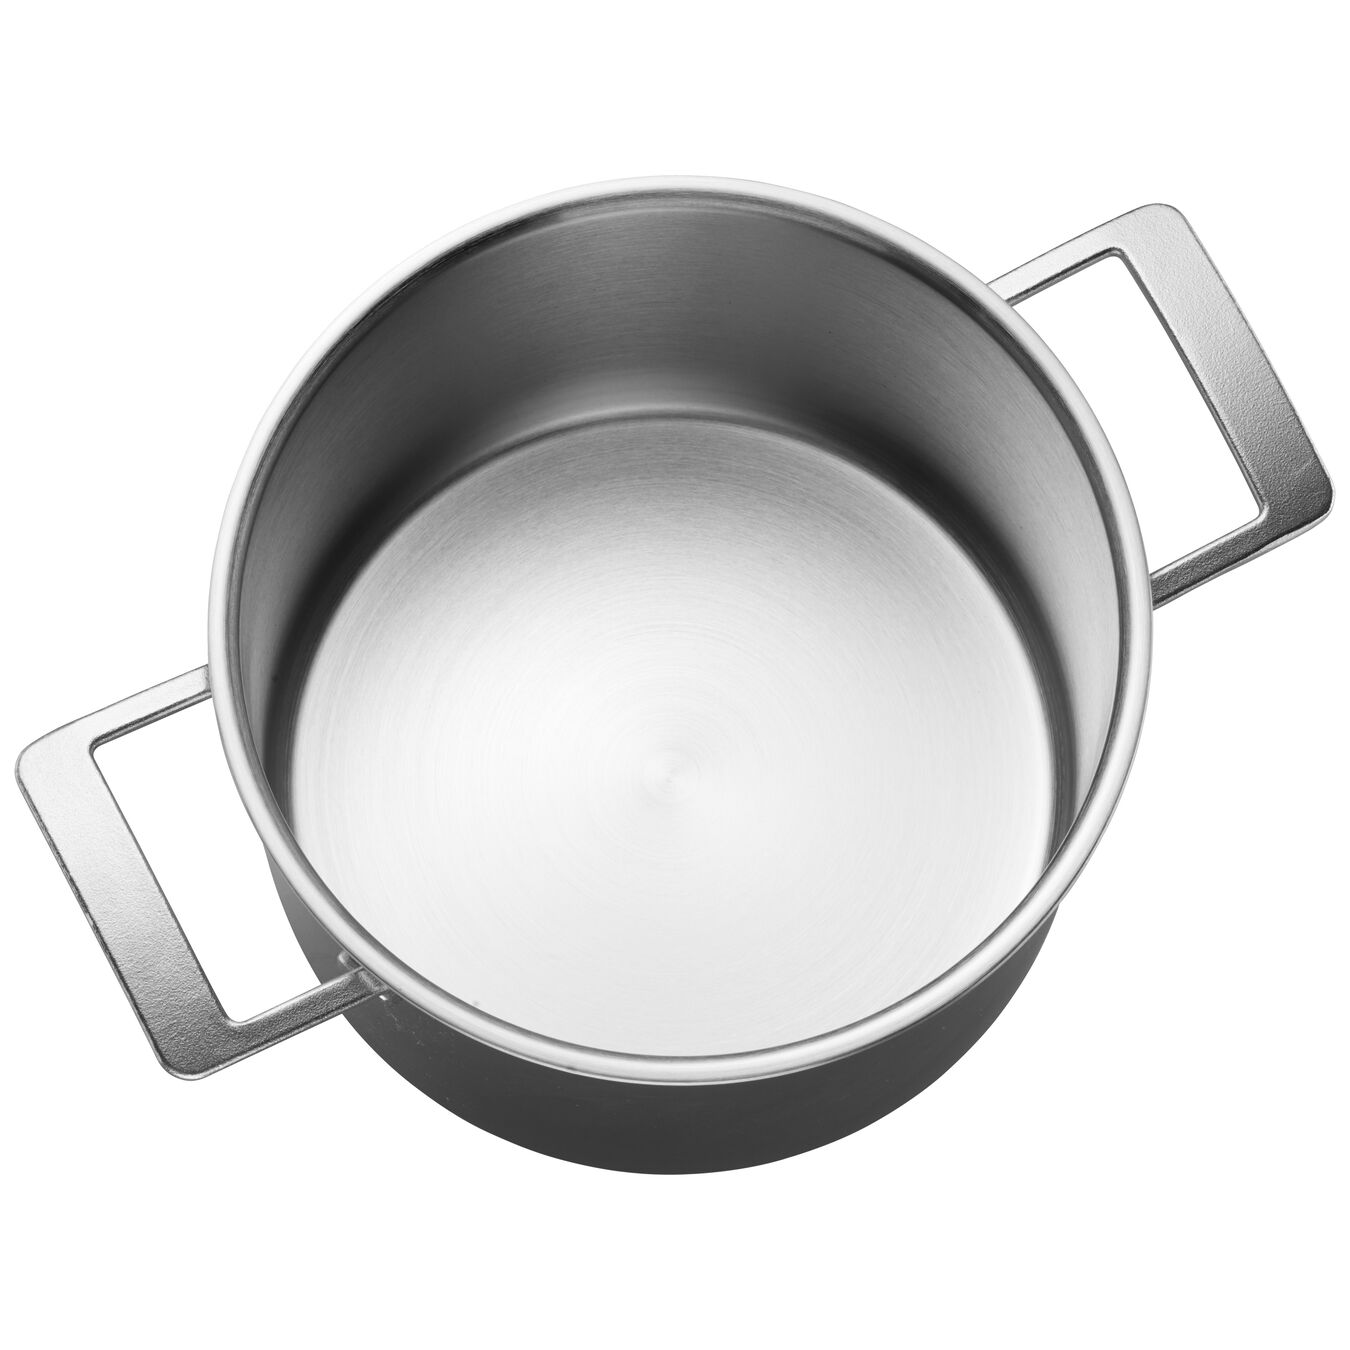 8-qt Stainless Steel Stock Pot,,large 3